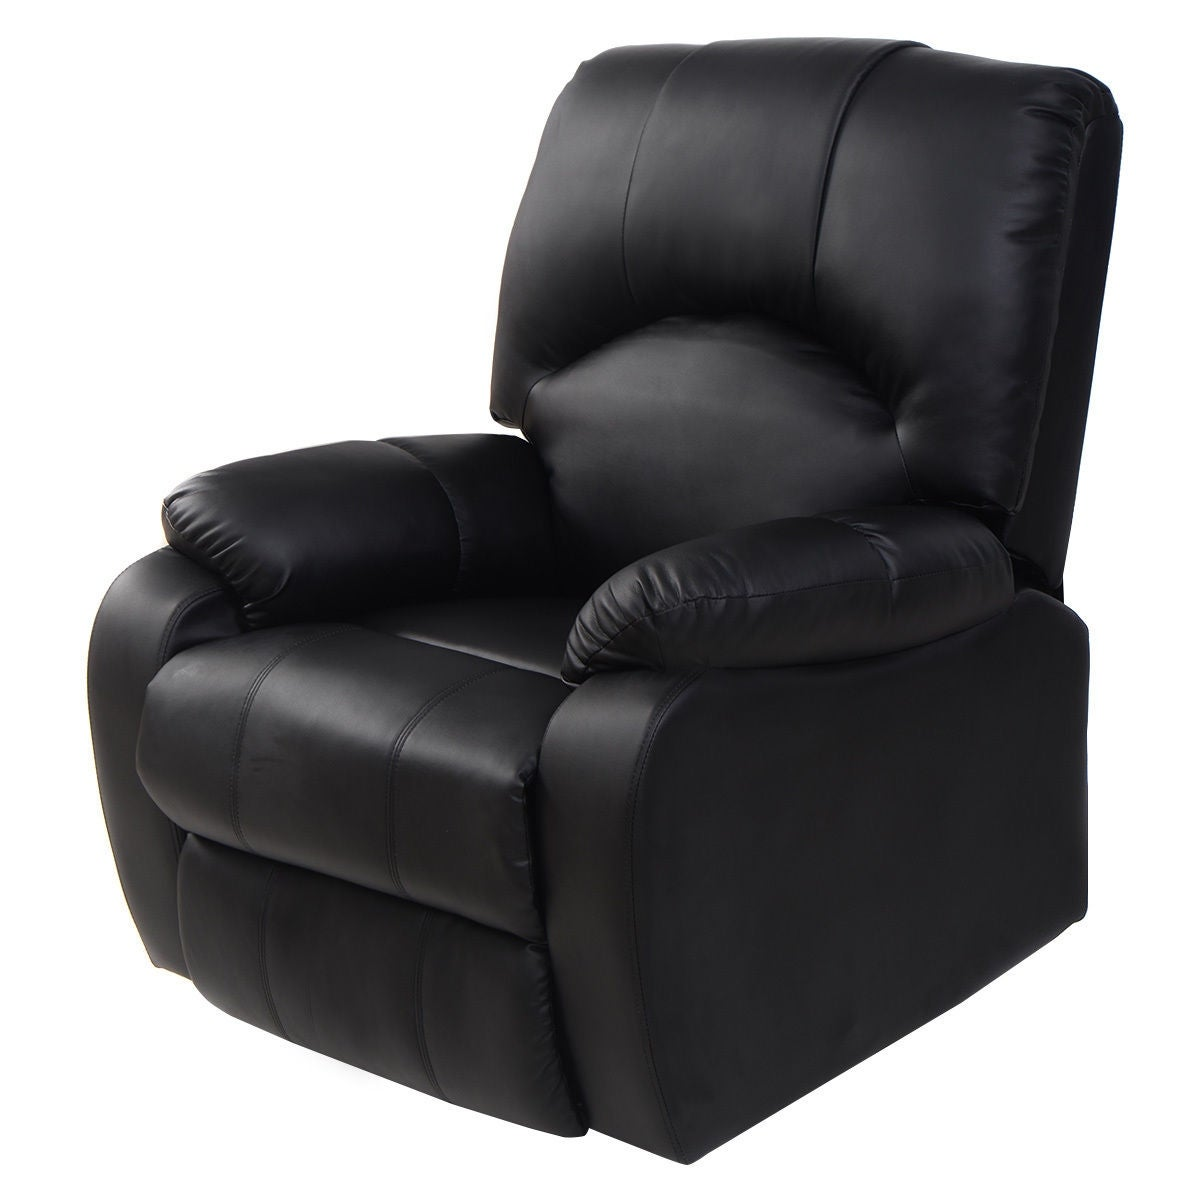 Costway Massage Recliner Sofa Chair Deluxe Ergonomic Lounge Heated w/Control Black